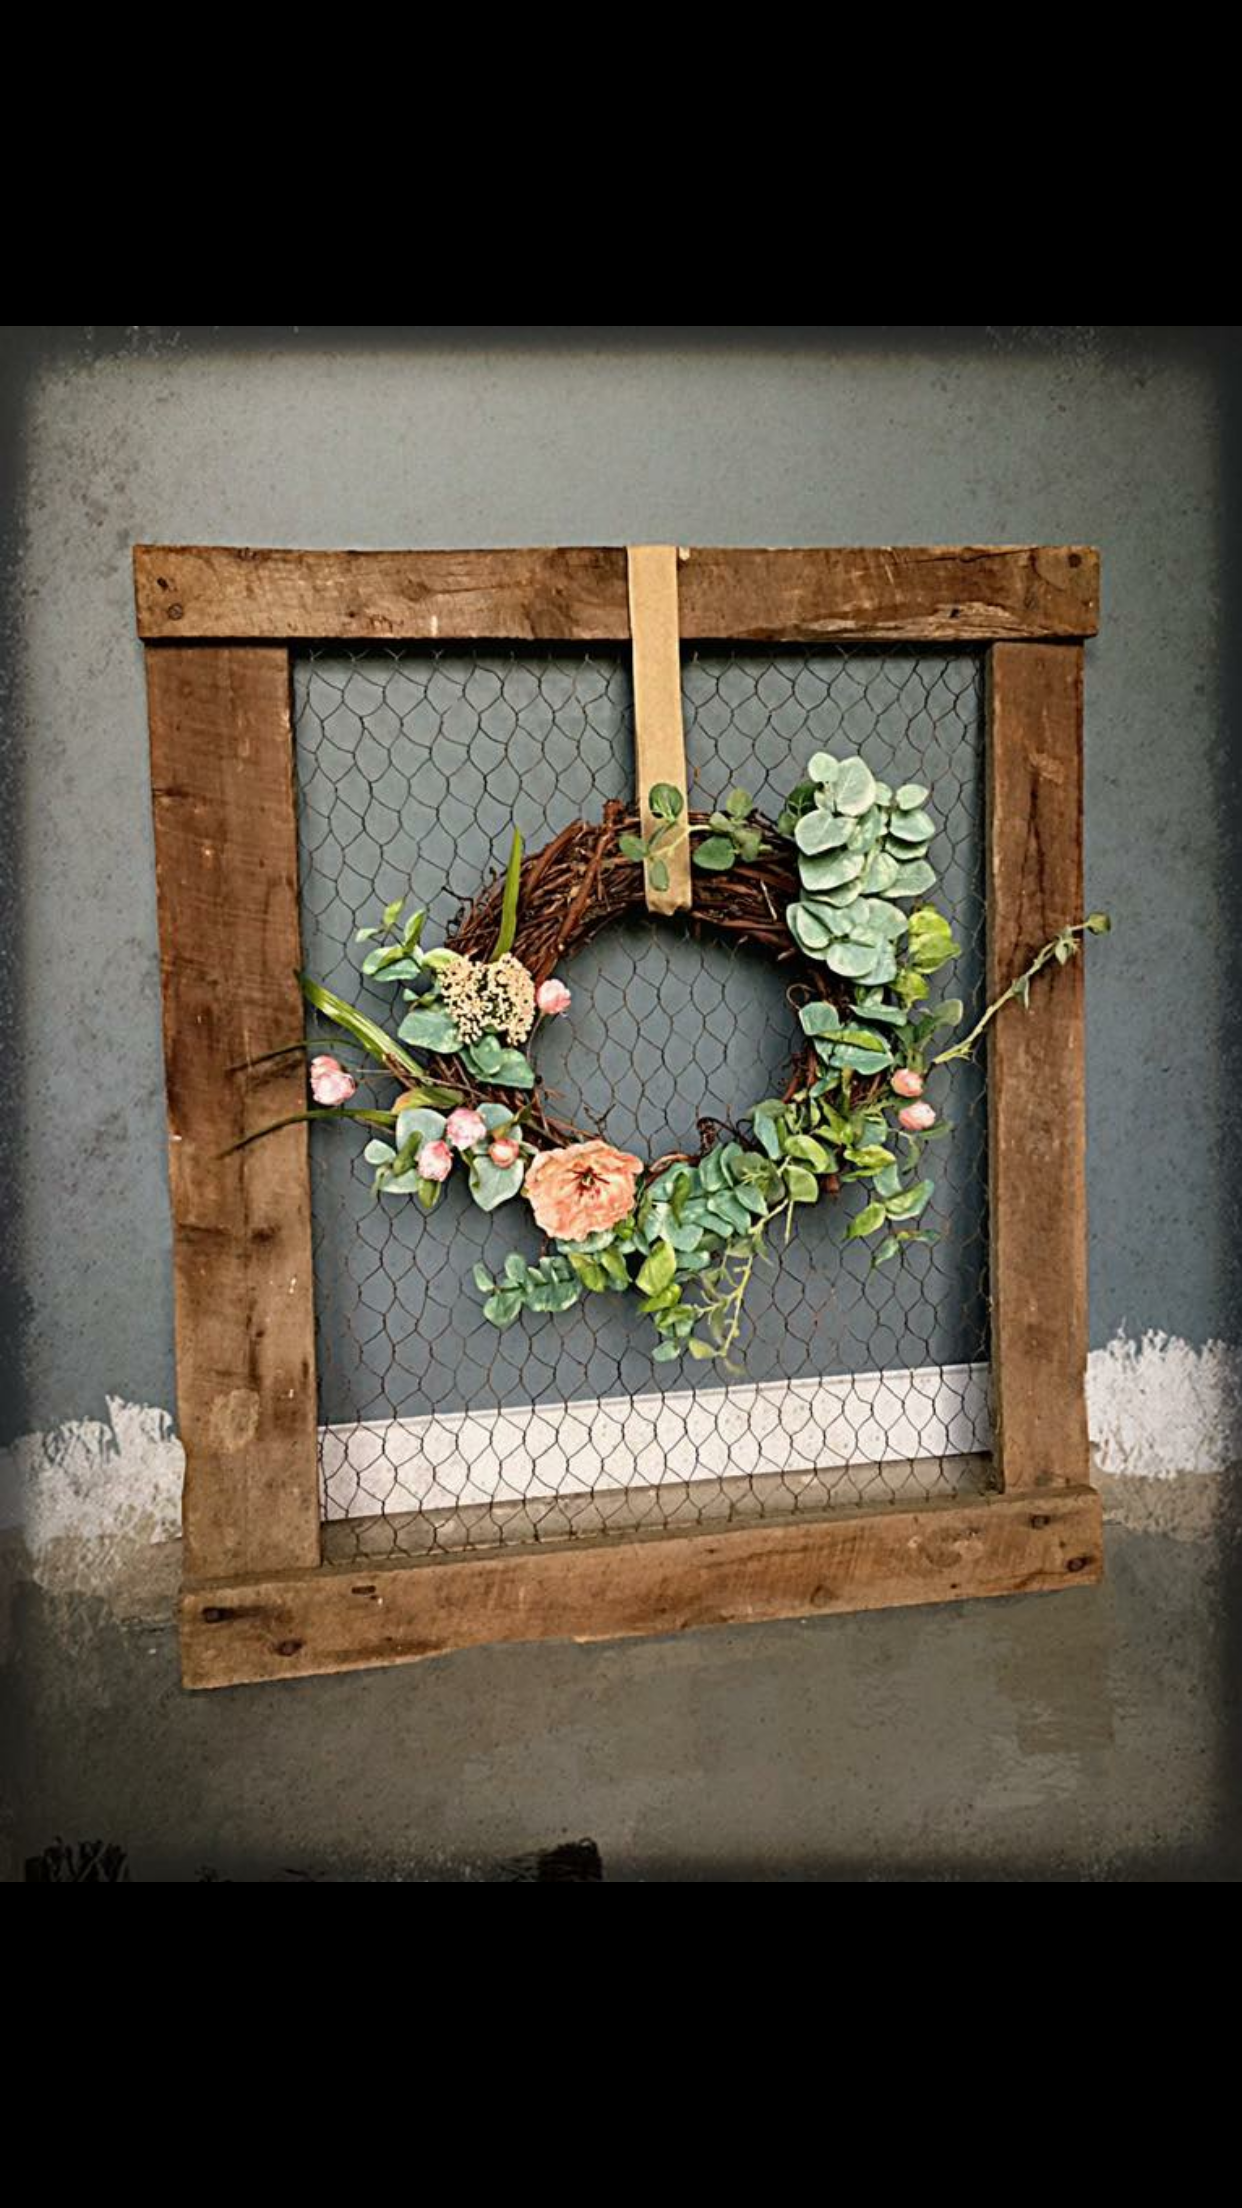 Old Chicken Wire Wooden Window Frame From Old Shed Cleaned It Up And Added A Custom Wreath For Decor